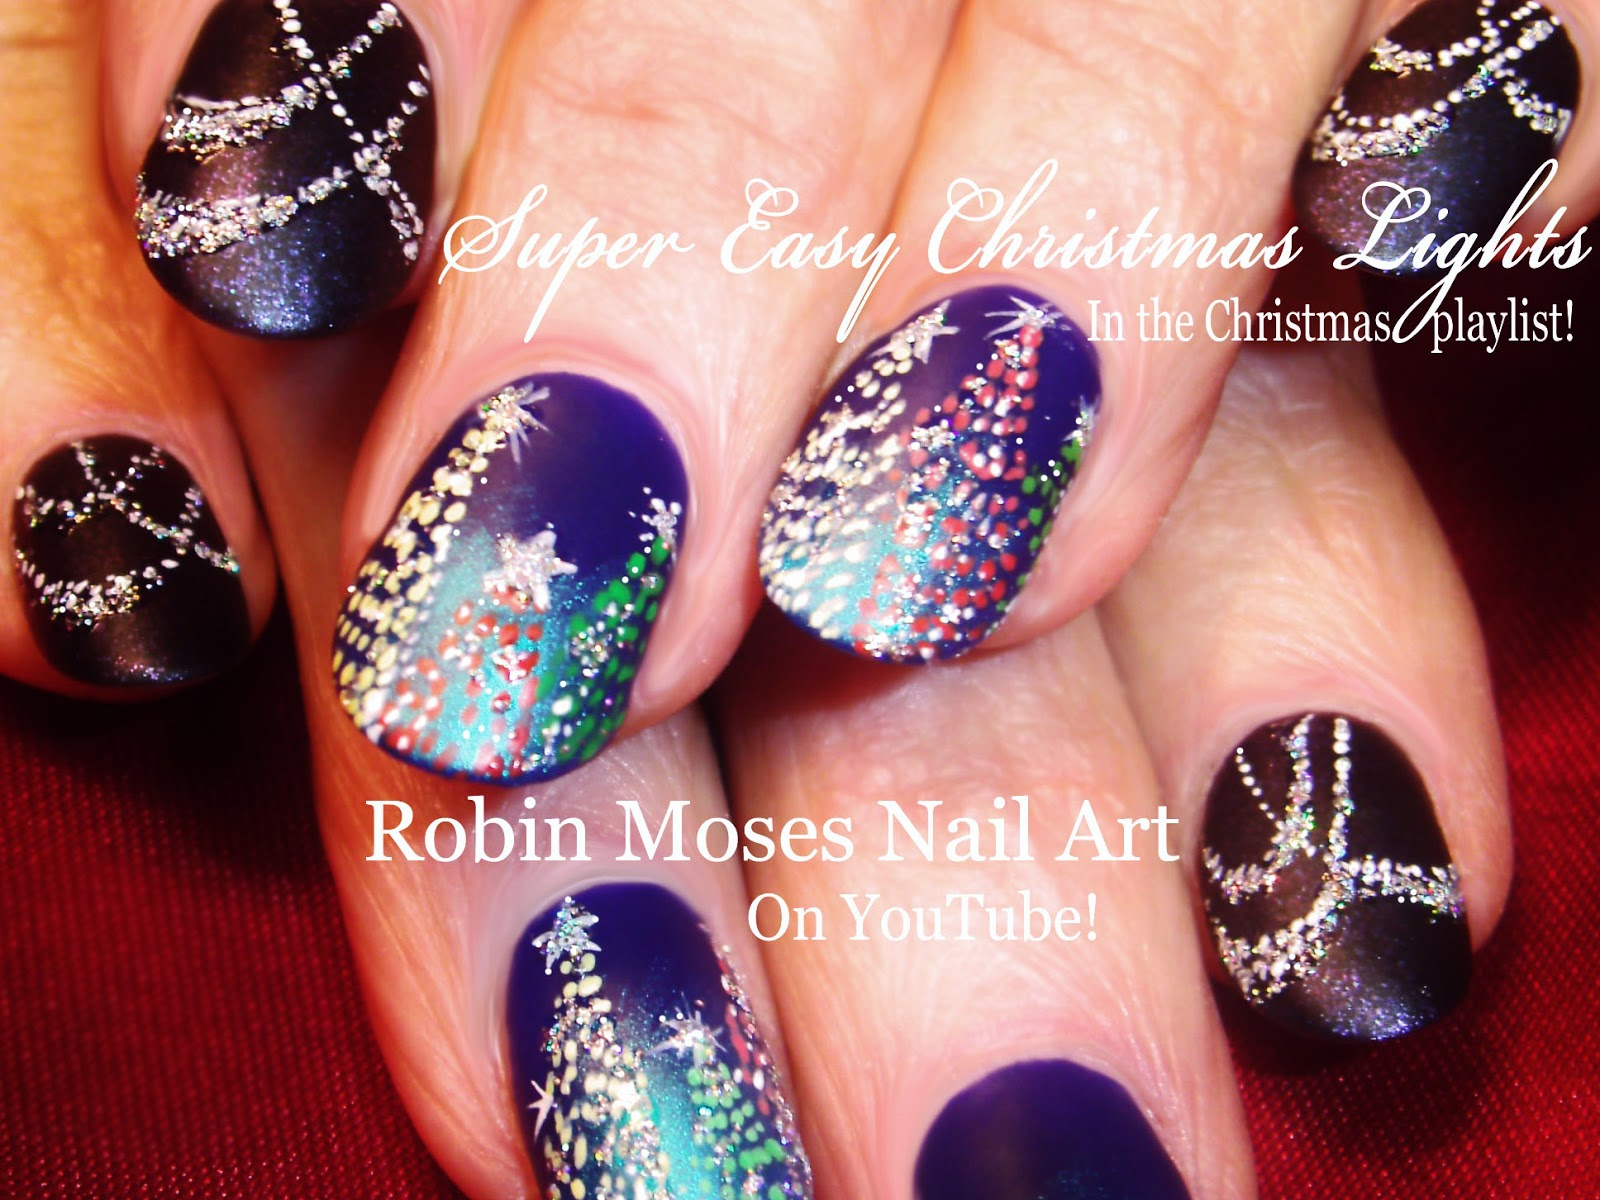 Robin Moses Nail Art: Easy Christmas Lights Nail Art ...